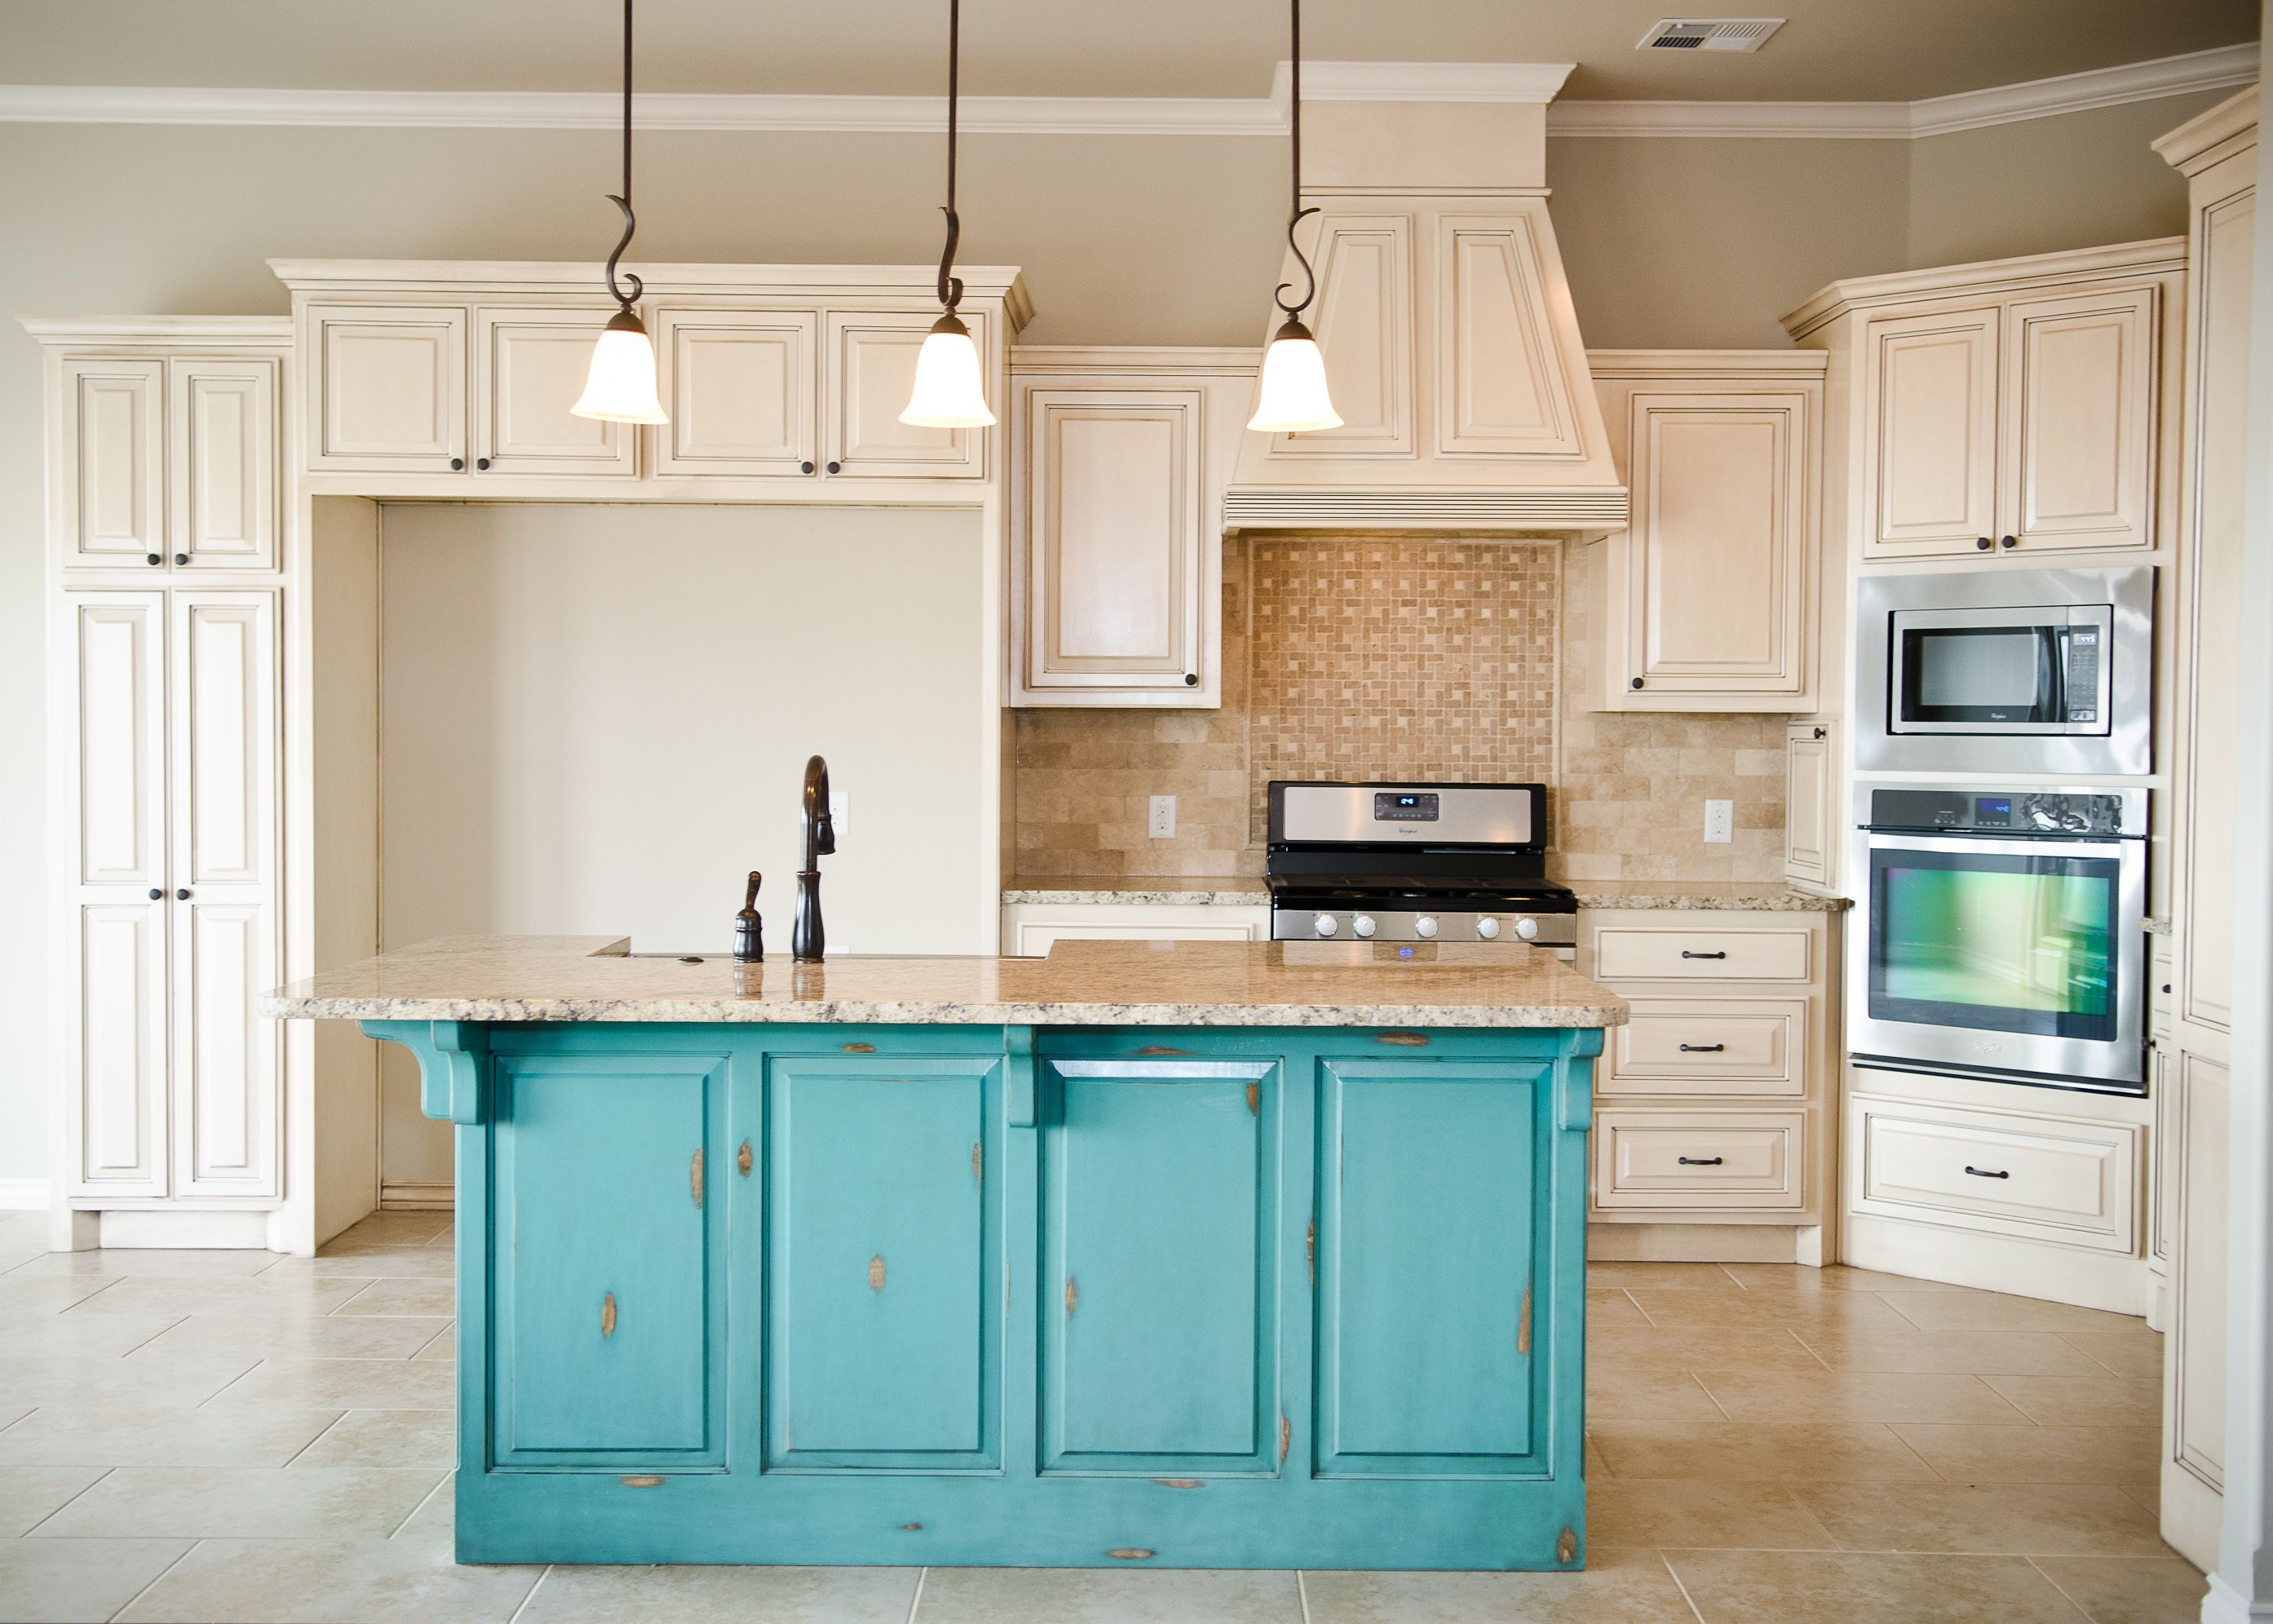 turquoise kitchen cabinets Distressed White Kitchen Cabinets Cream Distressed Kitchen Cabinets With Islands